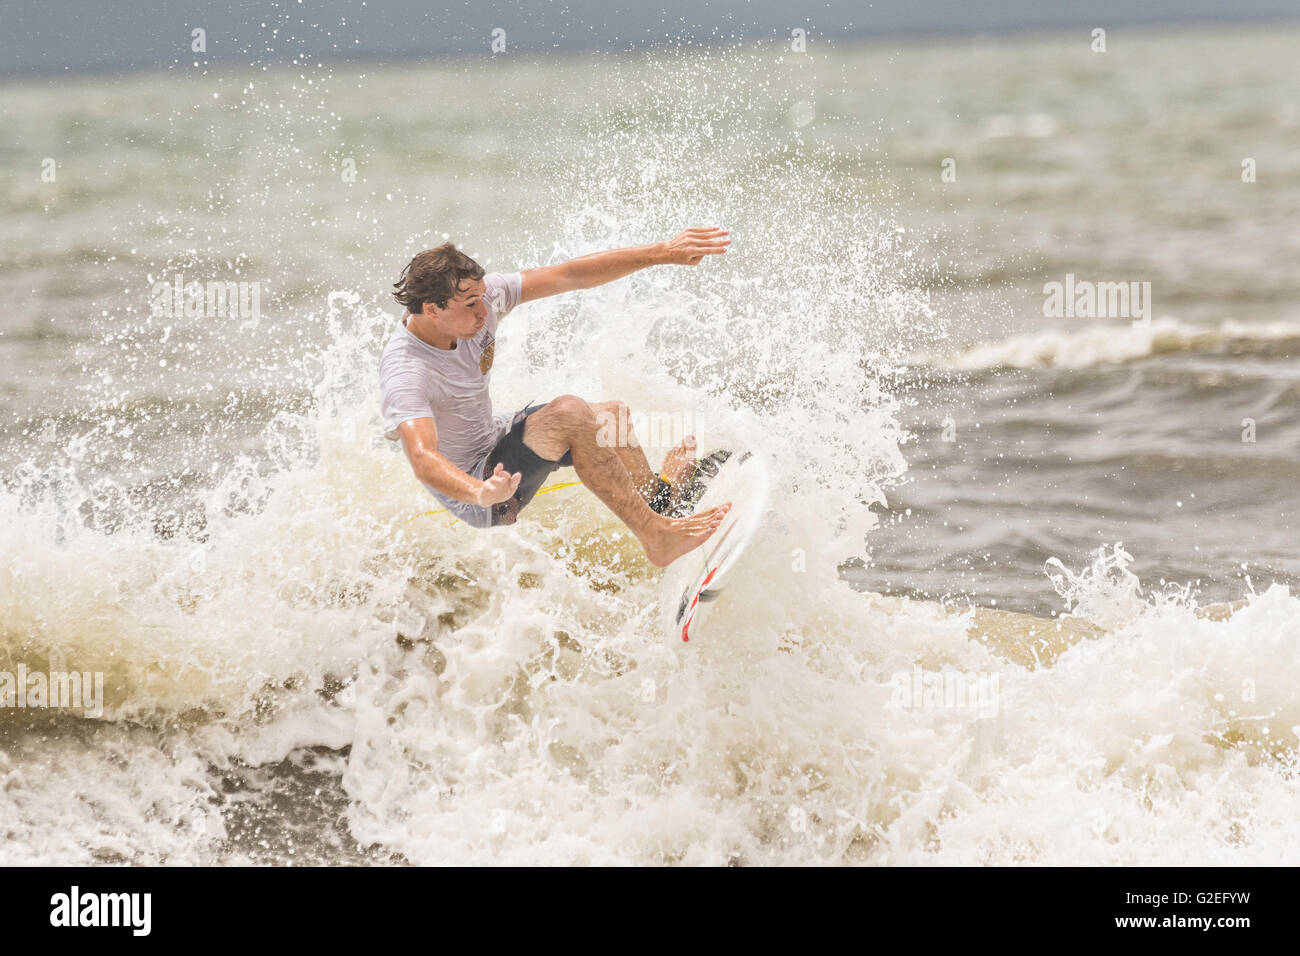 Folly Beach, South Carolina, USA. 29th May, 2016. Surfers take advantage of the waves as Tropical Storm Bonnie, - Stock Image